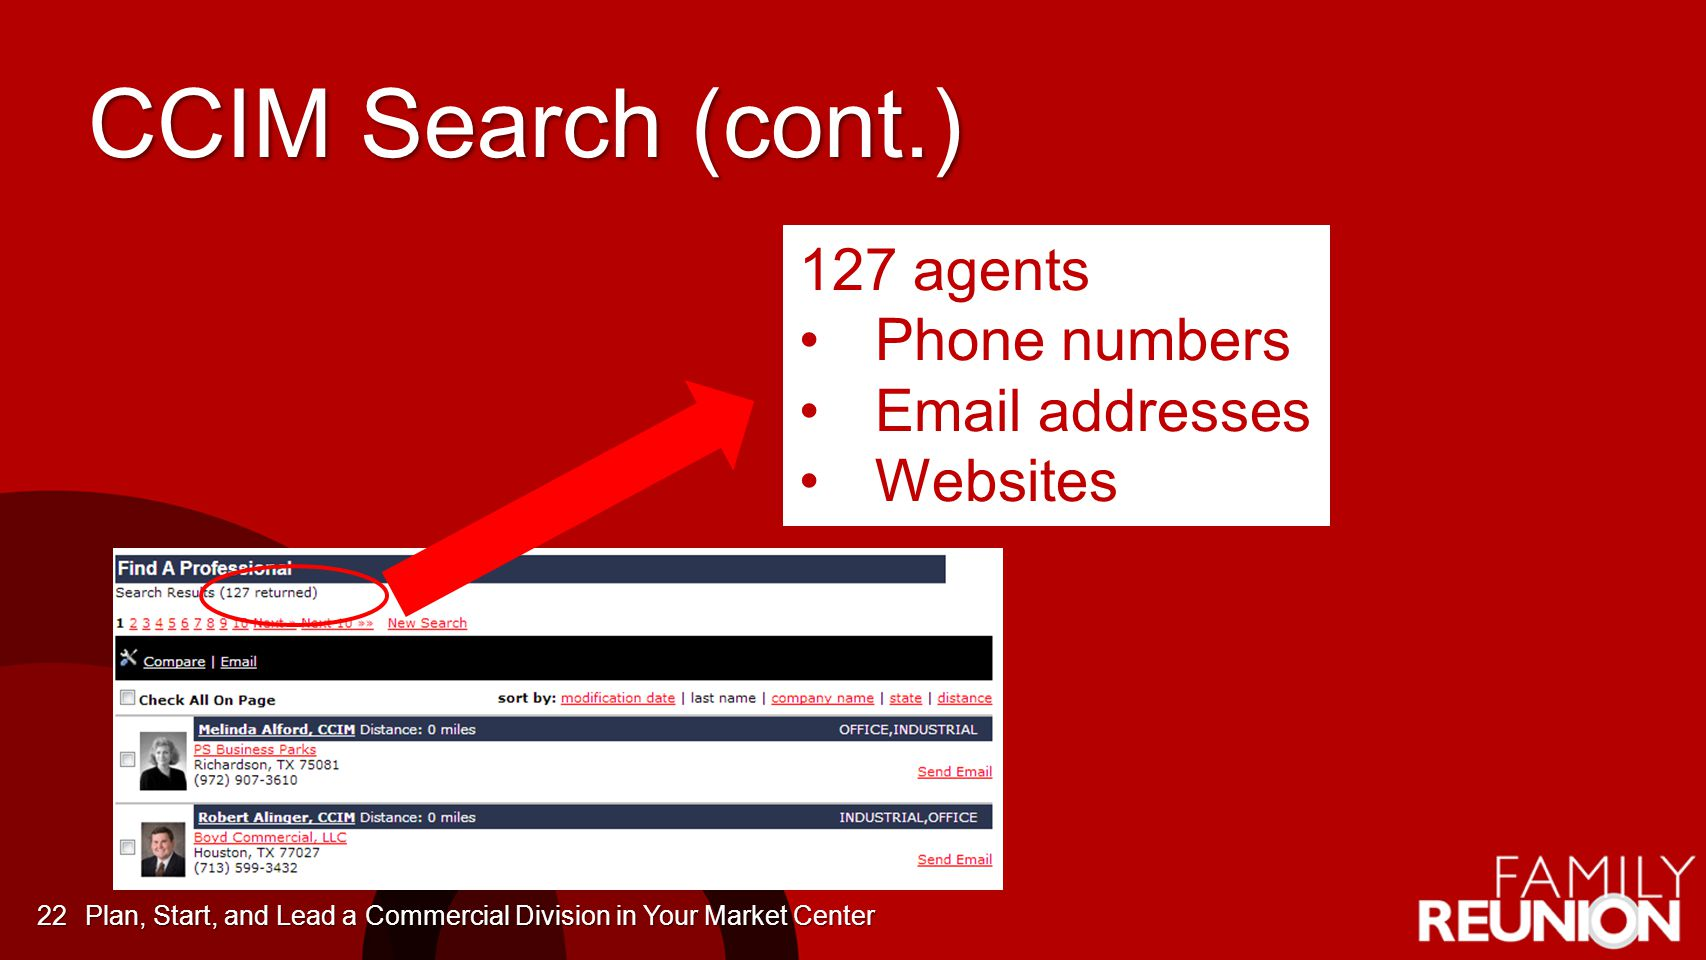 CCIM Search (cont.) 127 agents Phone numbers Email addresses Websites Plan, Start, and Lead a Commercial Division in Your Market Center22